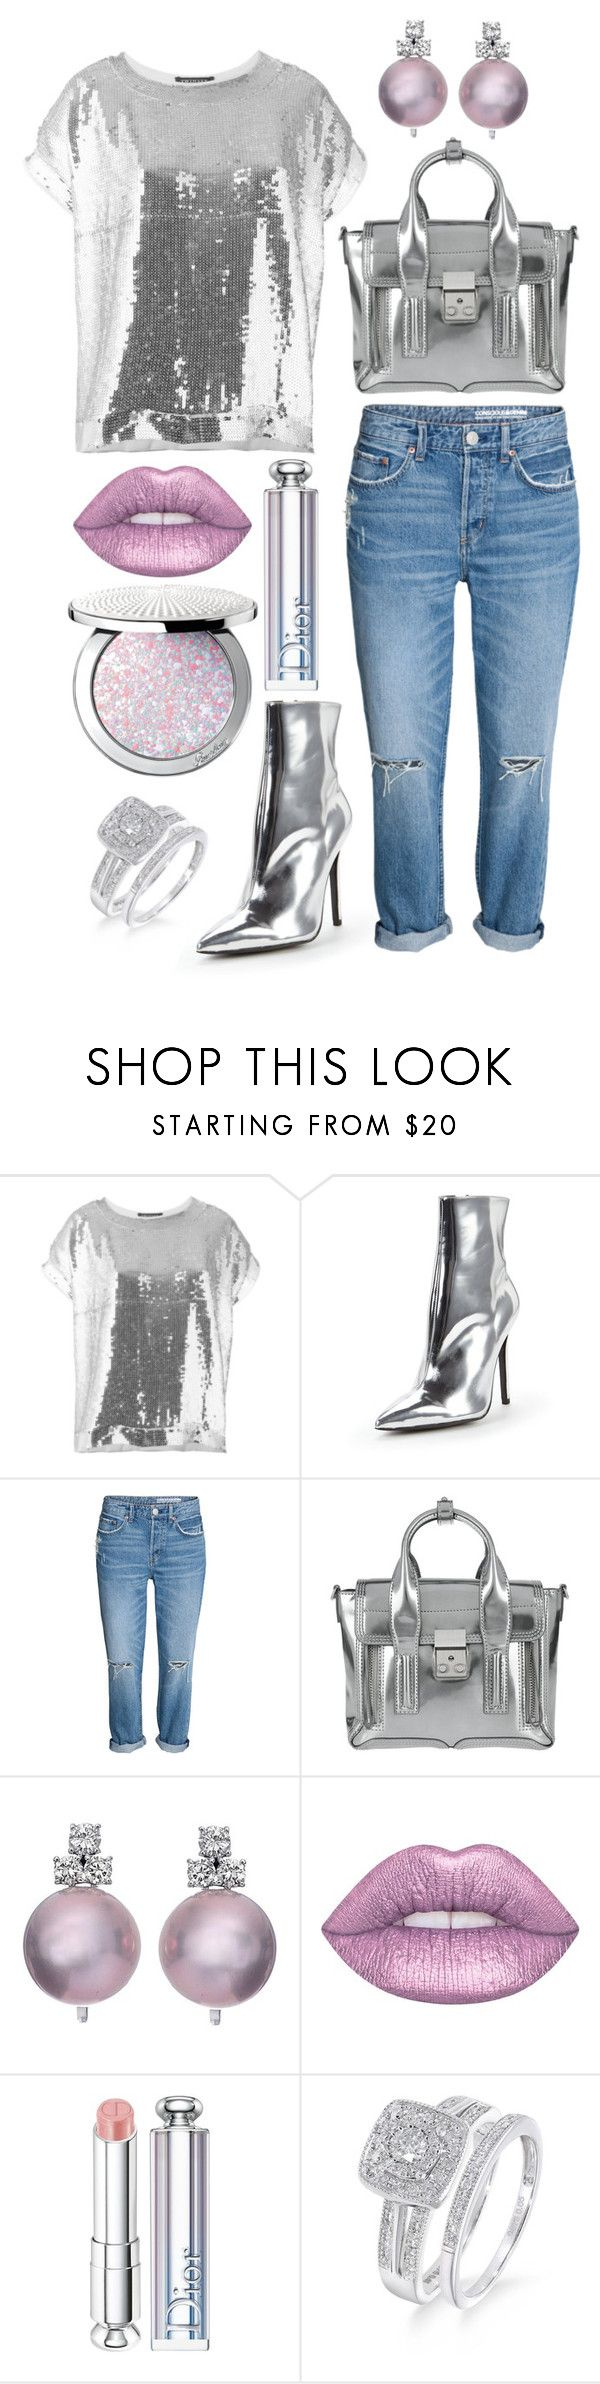 """""""Full metallic look"""" by theodor44444 ❤ liked on Polyvore featuring Twin-Set, Carvela, 3.1 Phillip Lim, Lime Crime, Christian Dior, Guerlain, Silver, Boots, metallic and Sequins"""